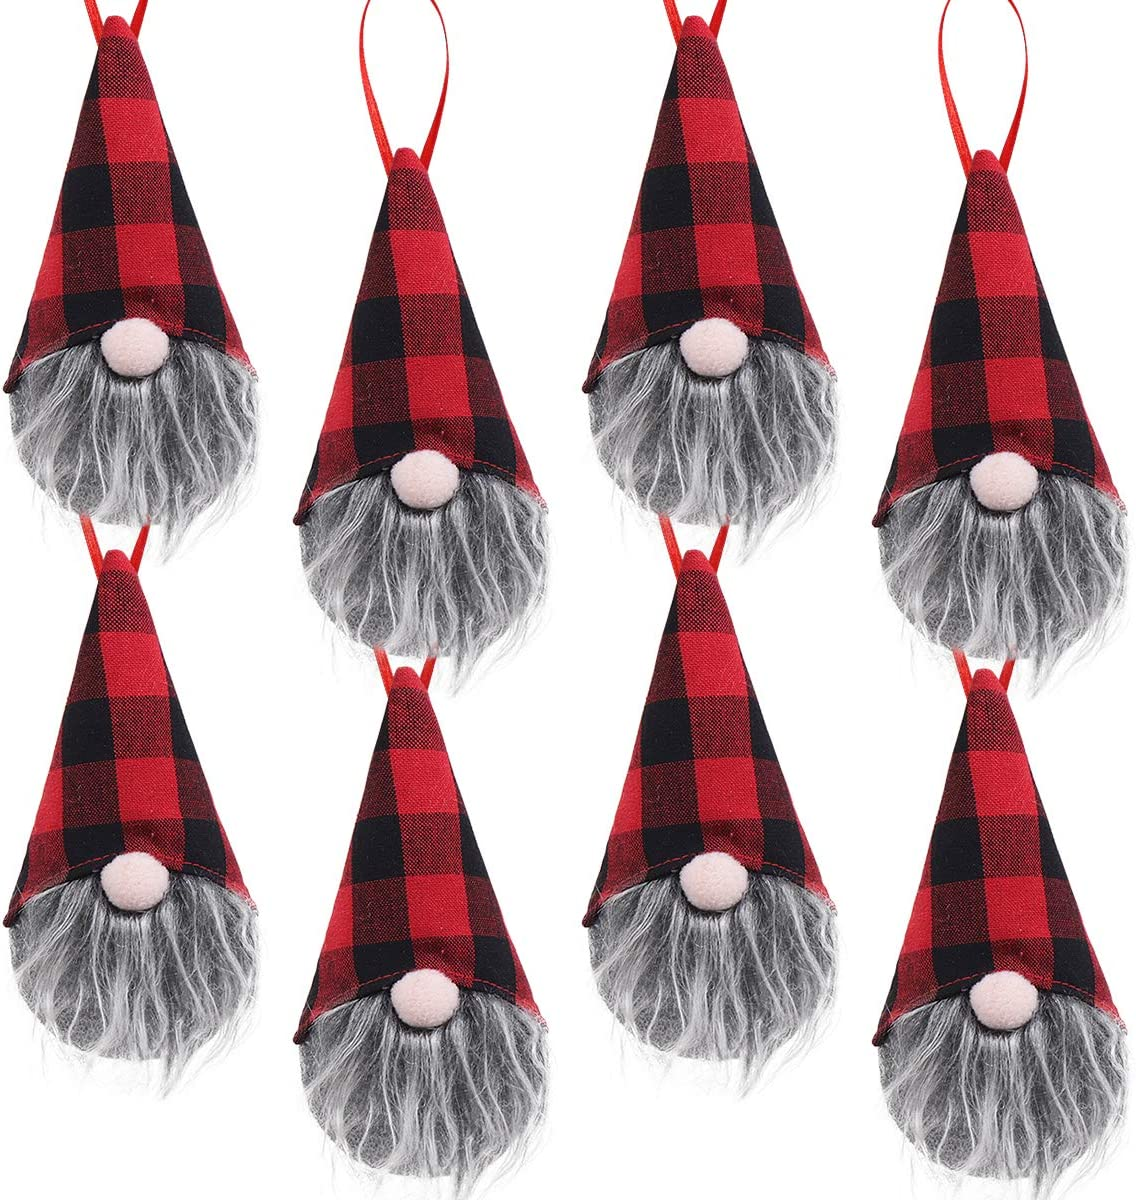 Ivenf Christmas Decorations, 8 Pack 5.5 inches Handmade Plush Tomte Gnome Hanging Decorations, Swedish Scandinavian Santa with Buffalo Check Plaid Hat, Holiday Home Decor, Tree Ornaments Set